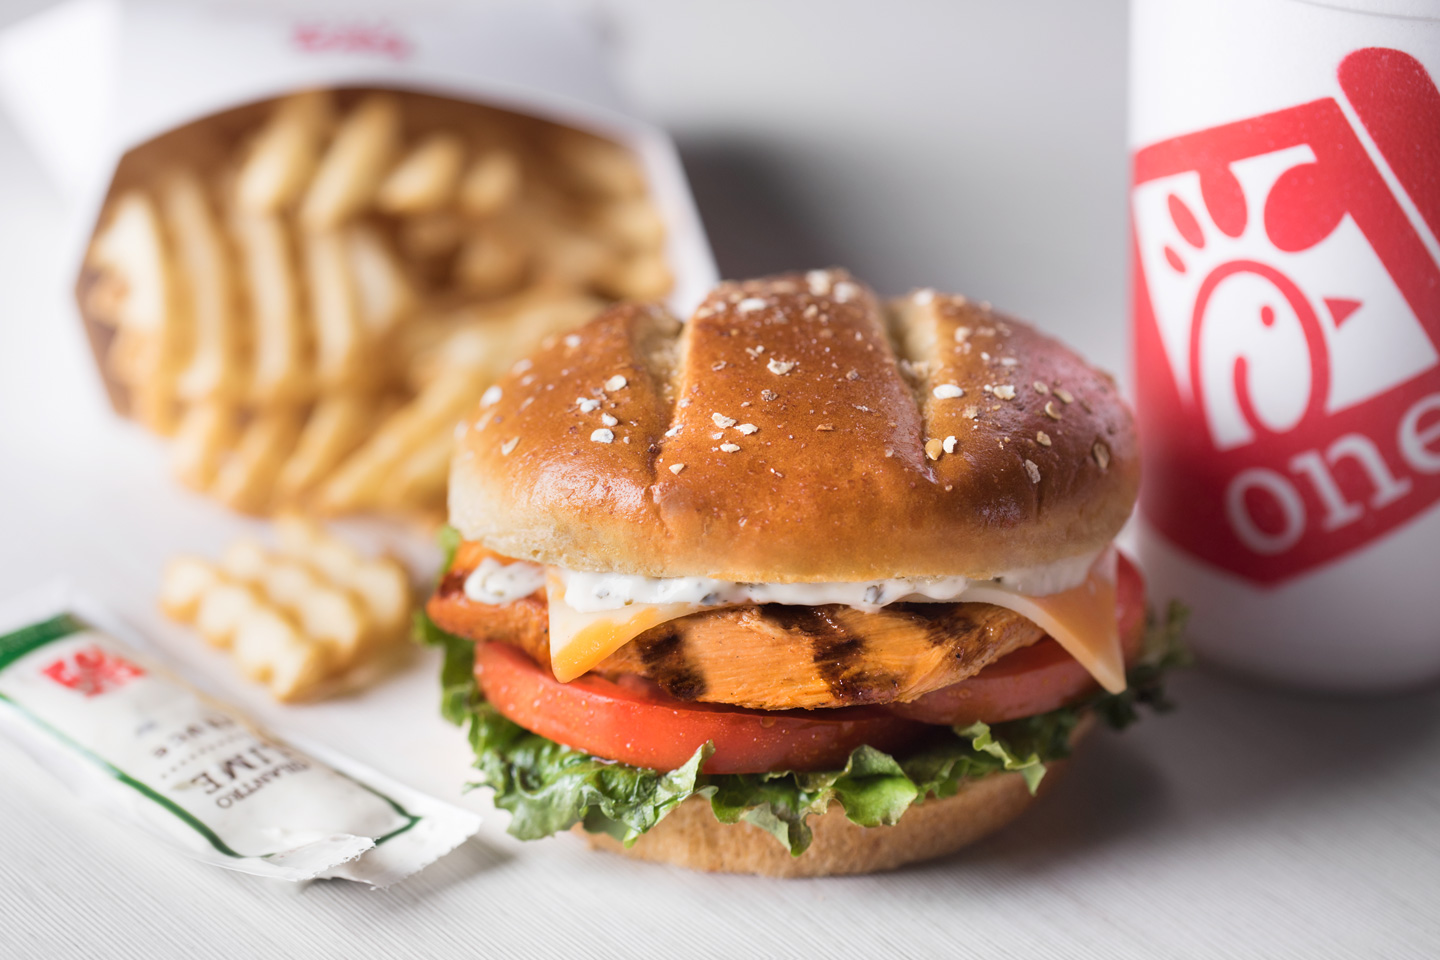 new grilled spicy chicken sandwich coming to select cities